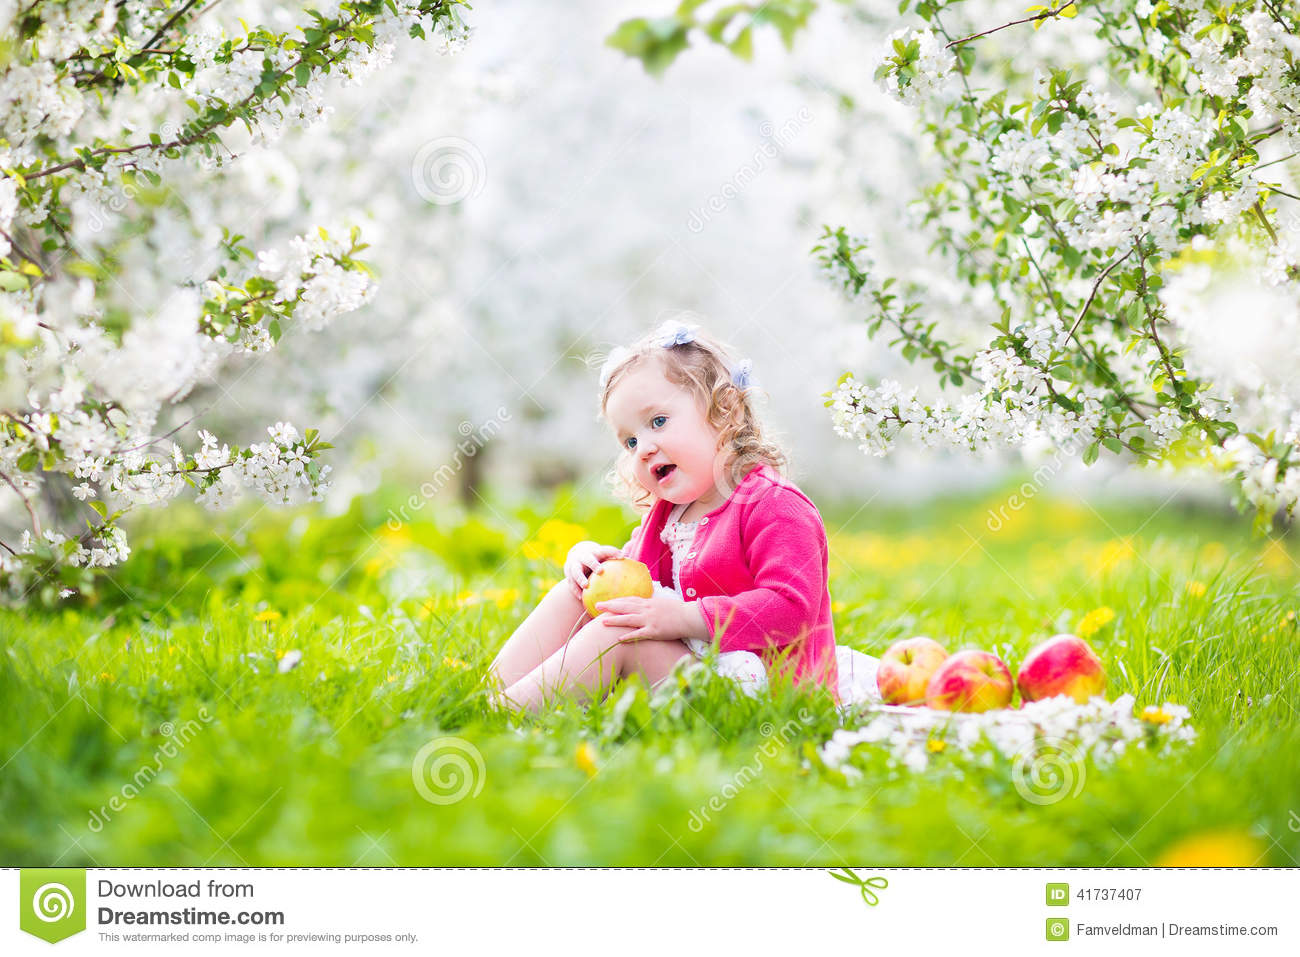 00201801a49 Adorable happy toddler girl with curly hair and flower crown wearing a red  dress enjoying picnic in a beautiful blooming frui garden with white  blossoms on ...